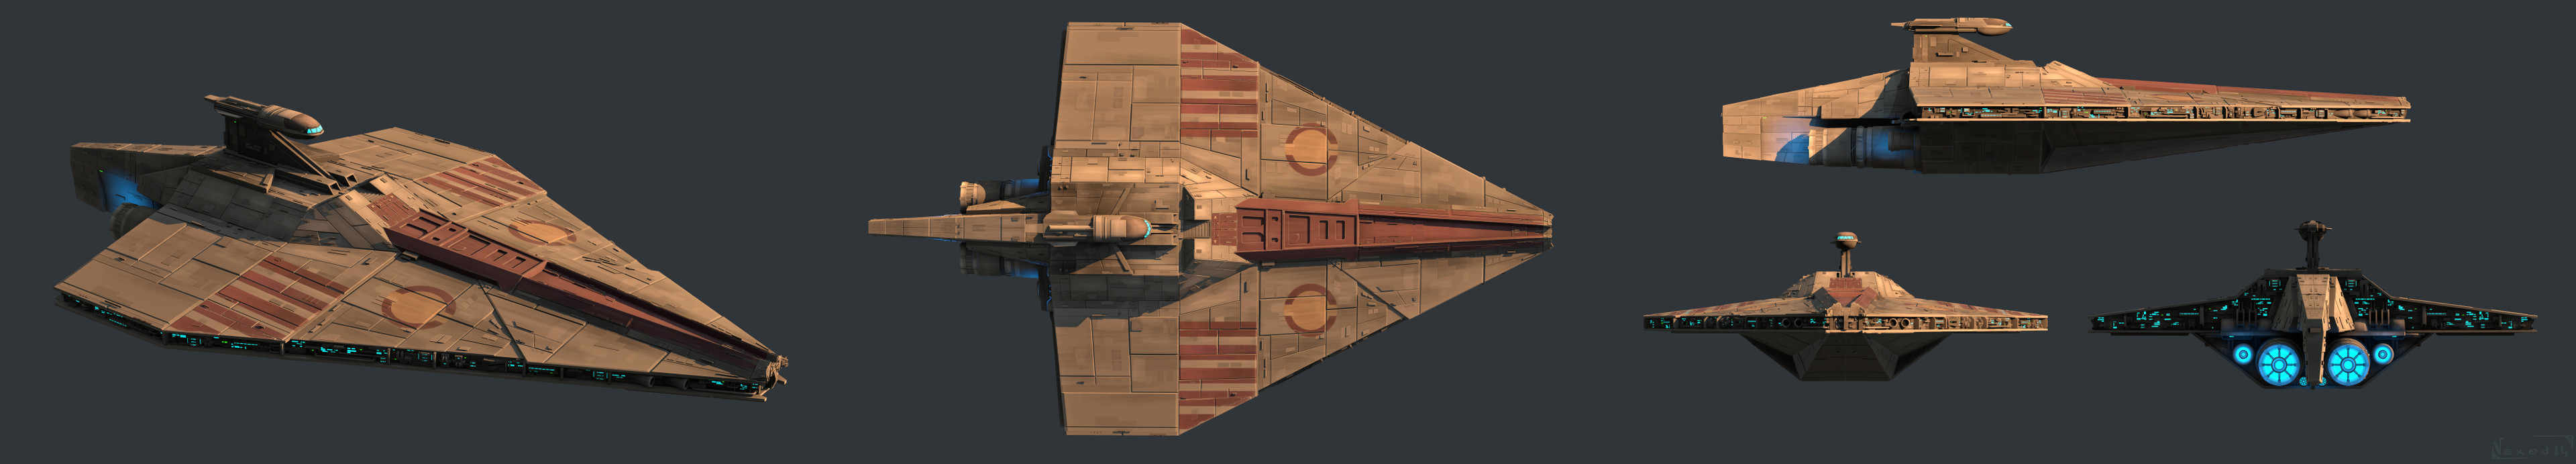 Acclamator Class Star Destroyer